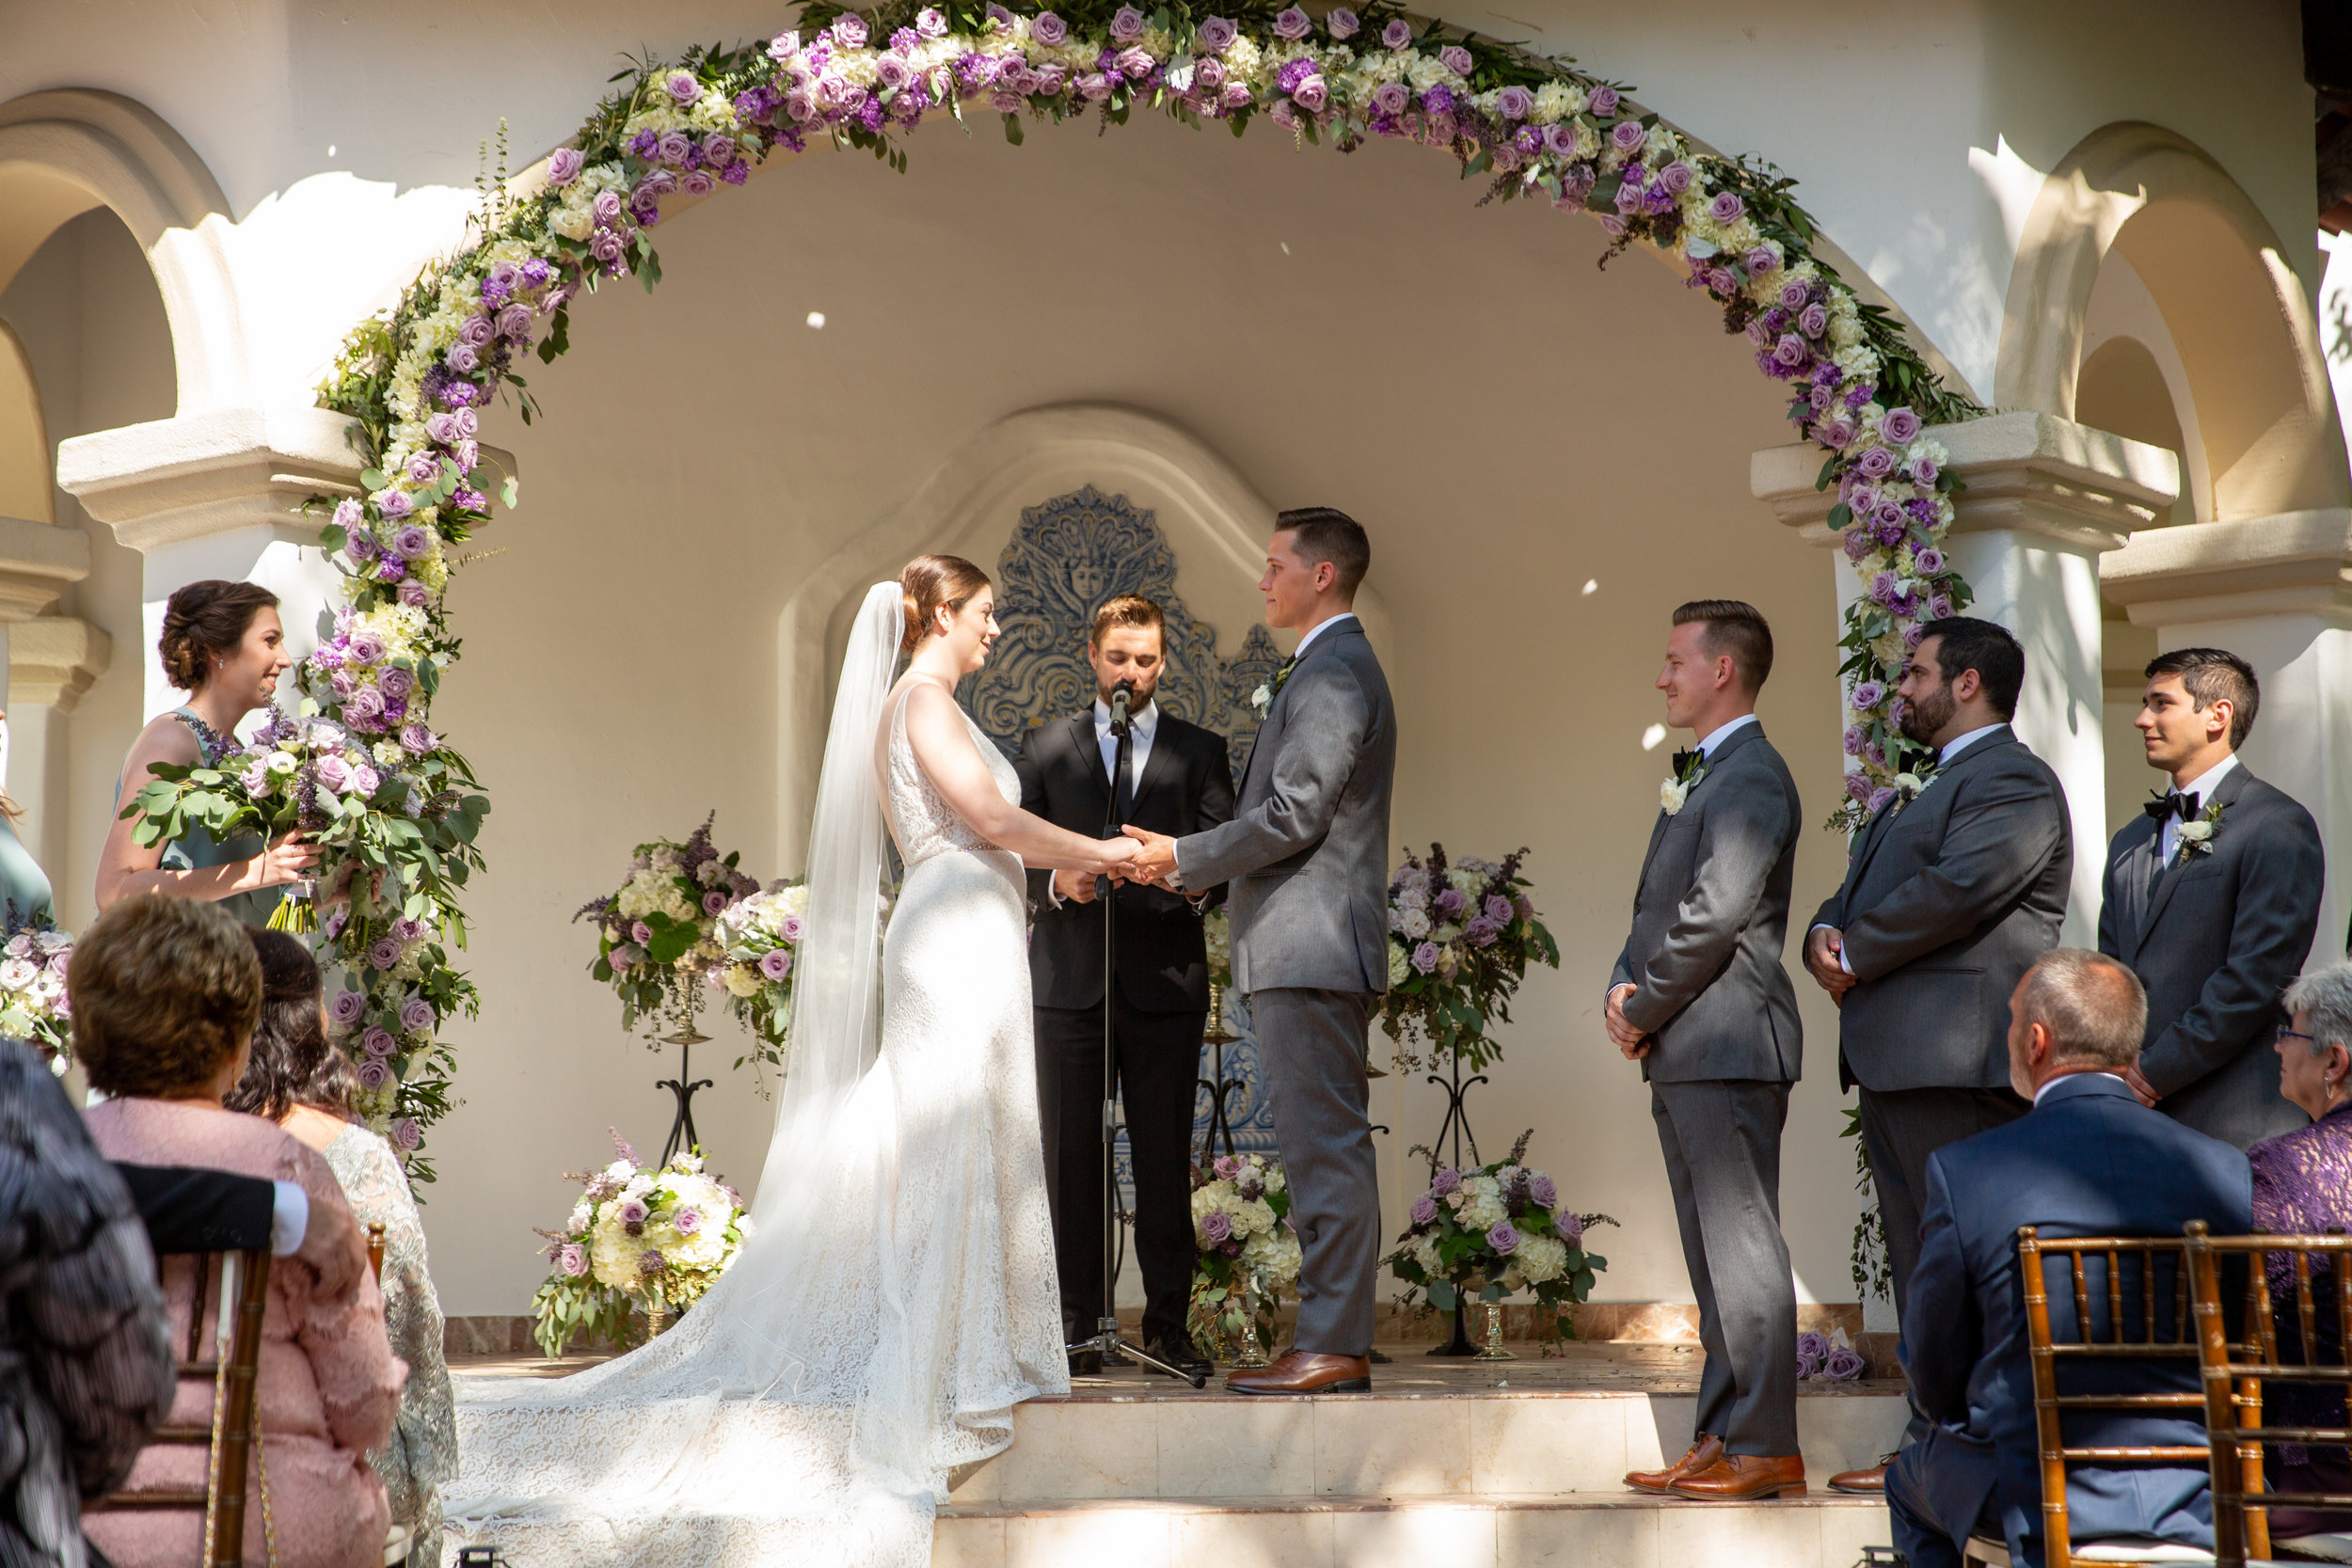 Taylor and Brenton - Ceremony-101.JPG